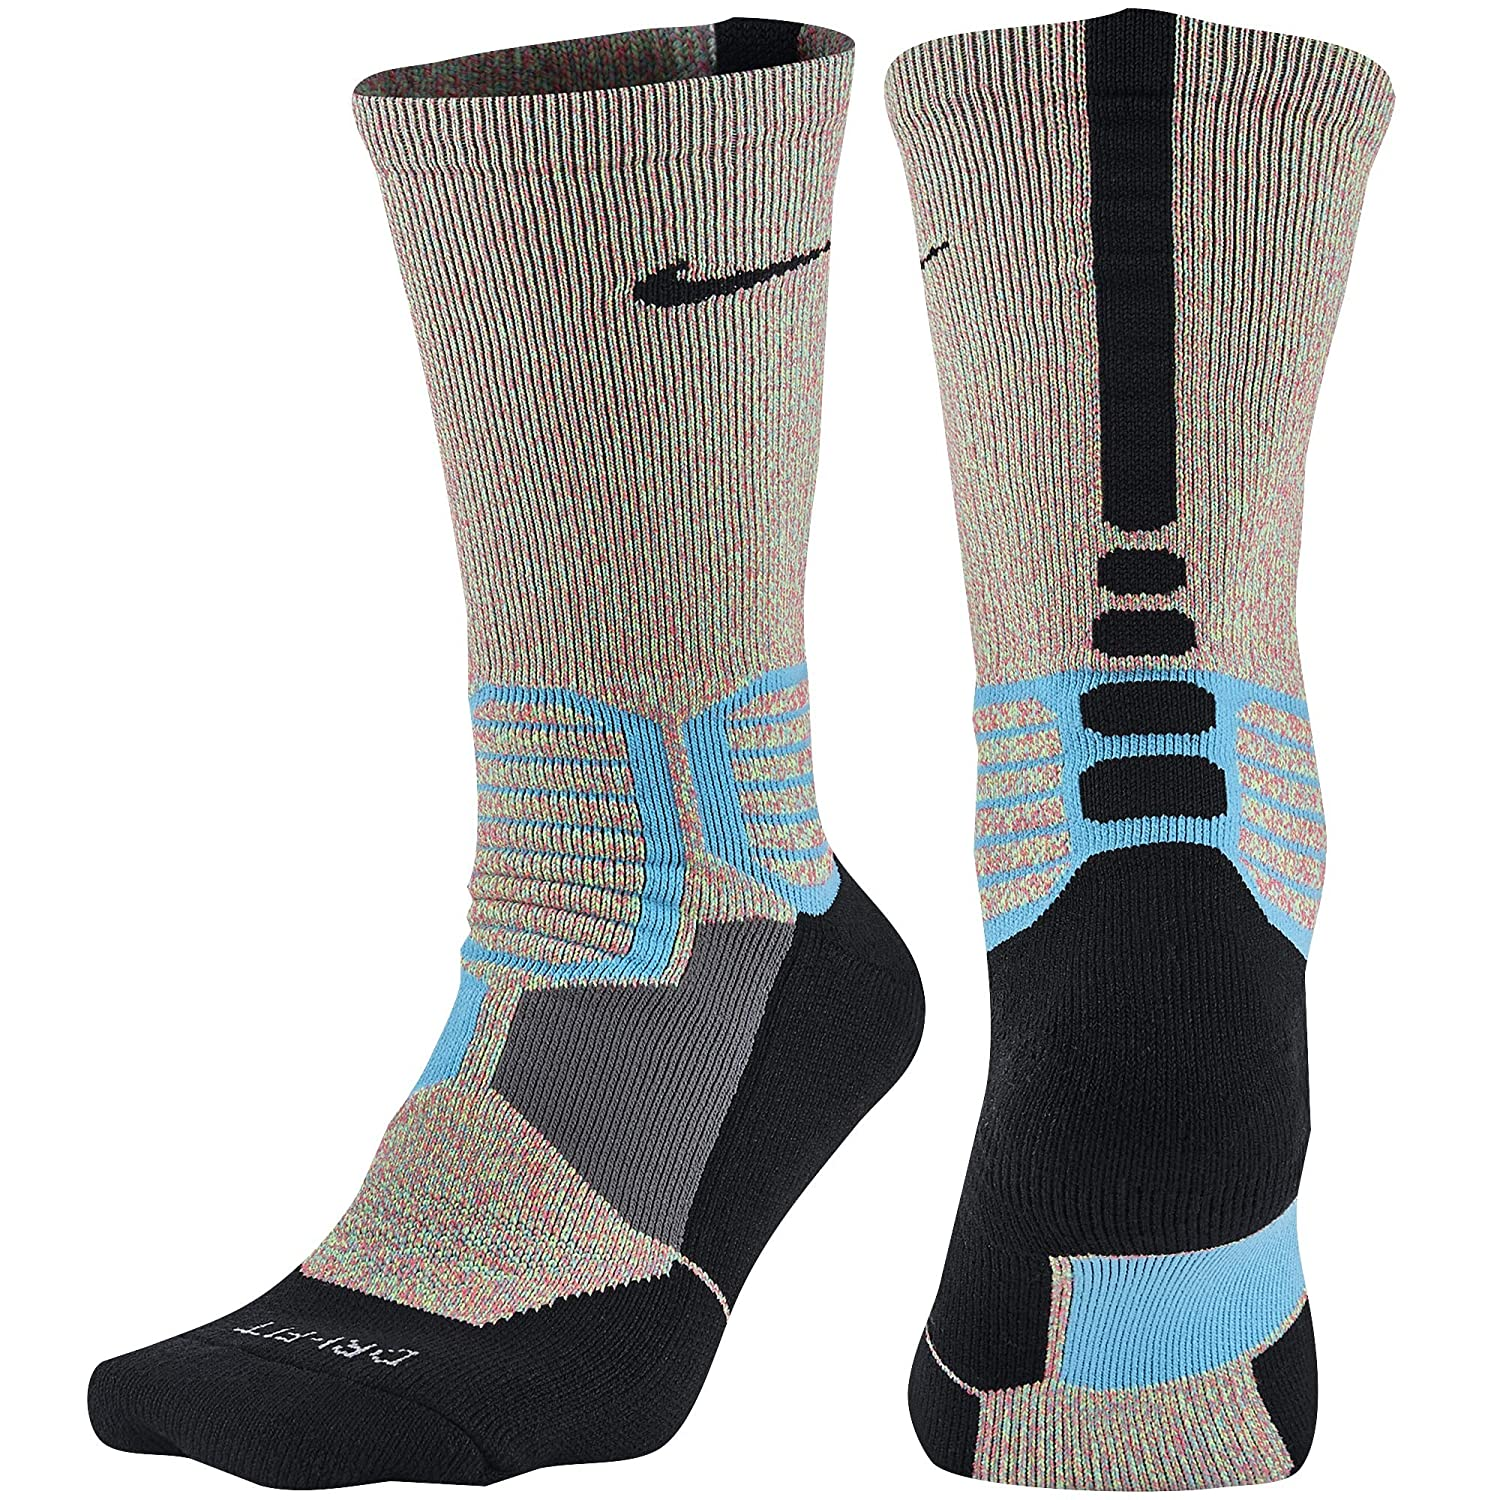 Nike Hyperelite Crossover Omega Blue/Black Basketball Socks